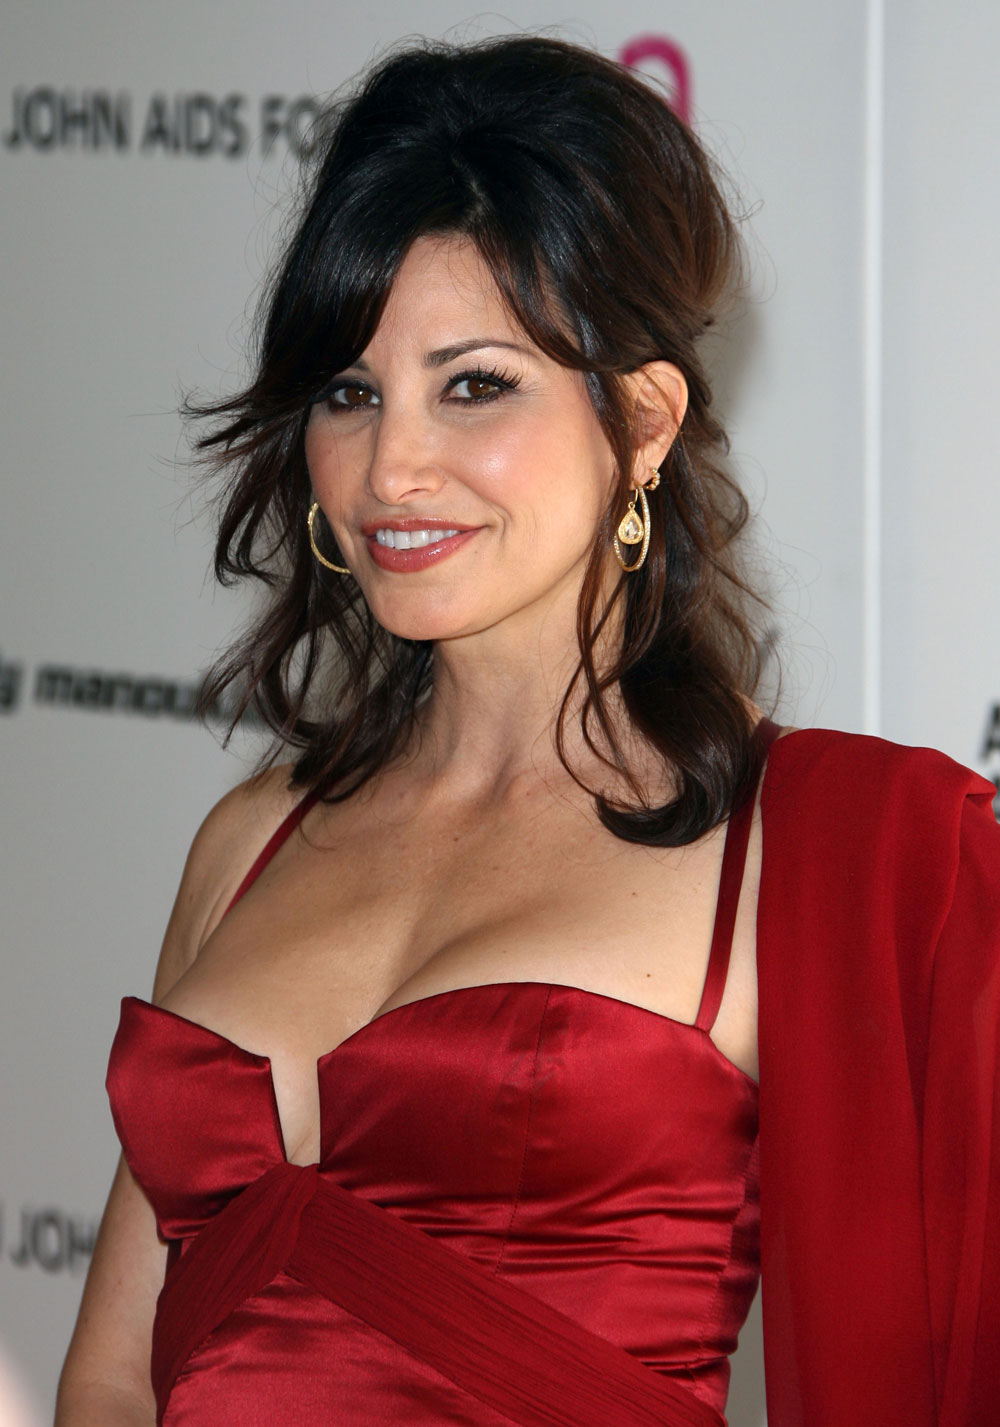 Gina Gershon For mobile